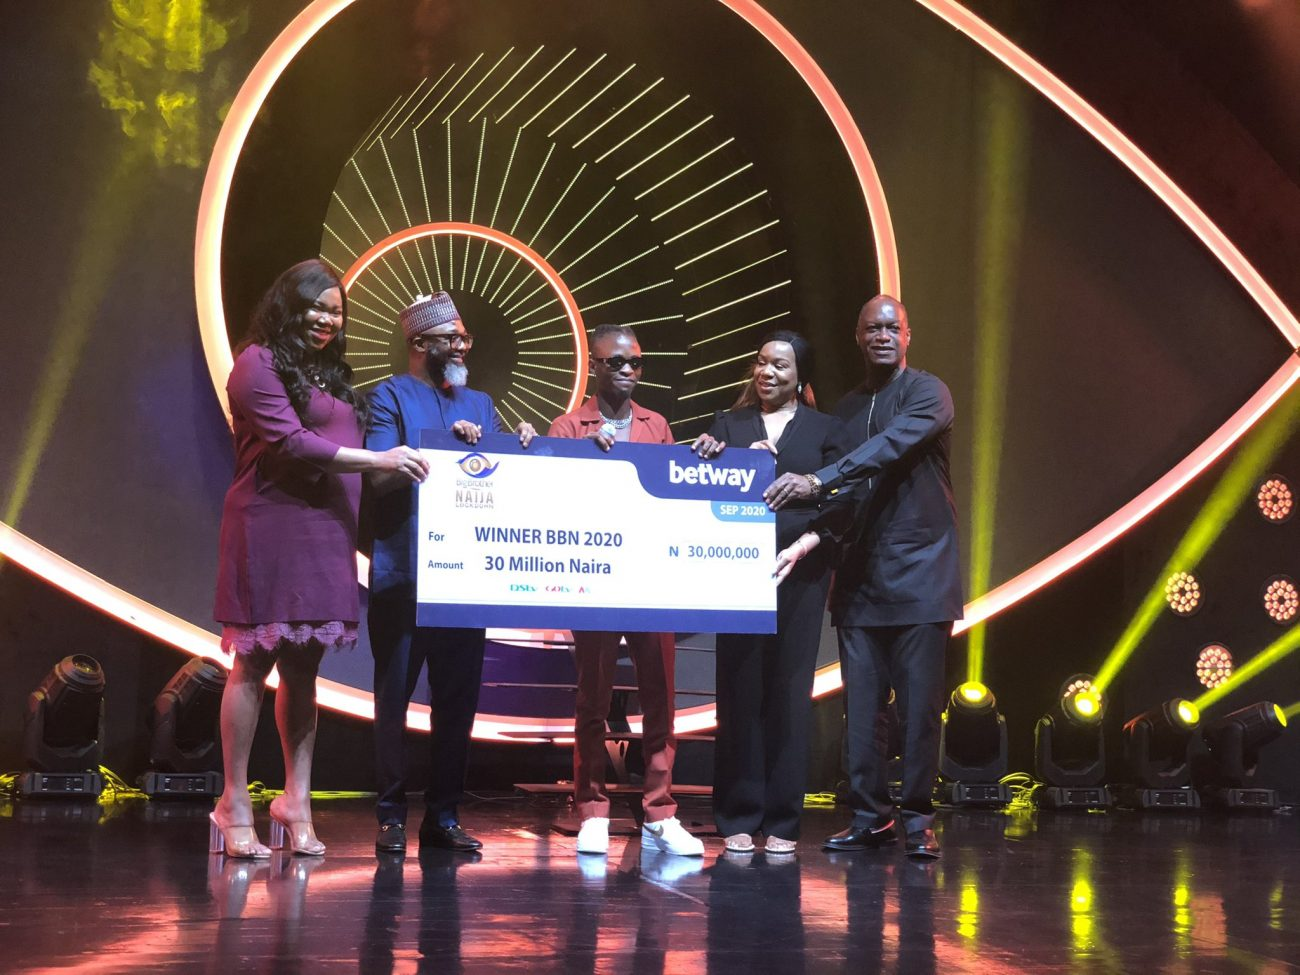 BBNaija 2020: The Moment Laycon officially receives his N30 million prize money